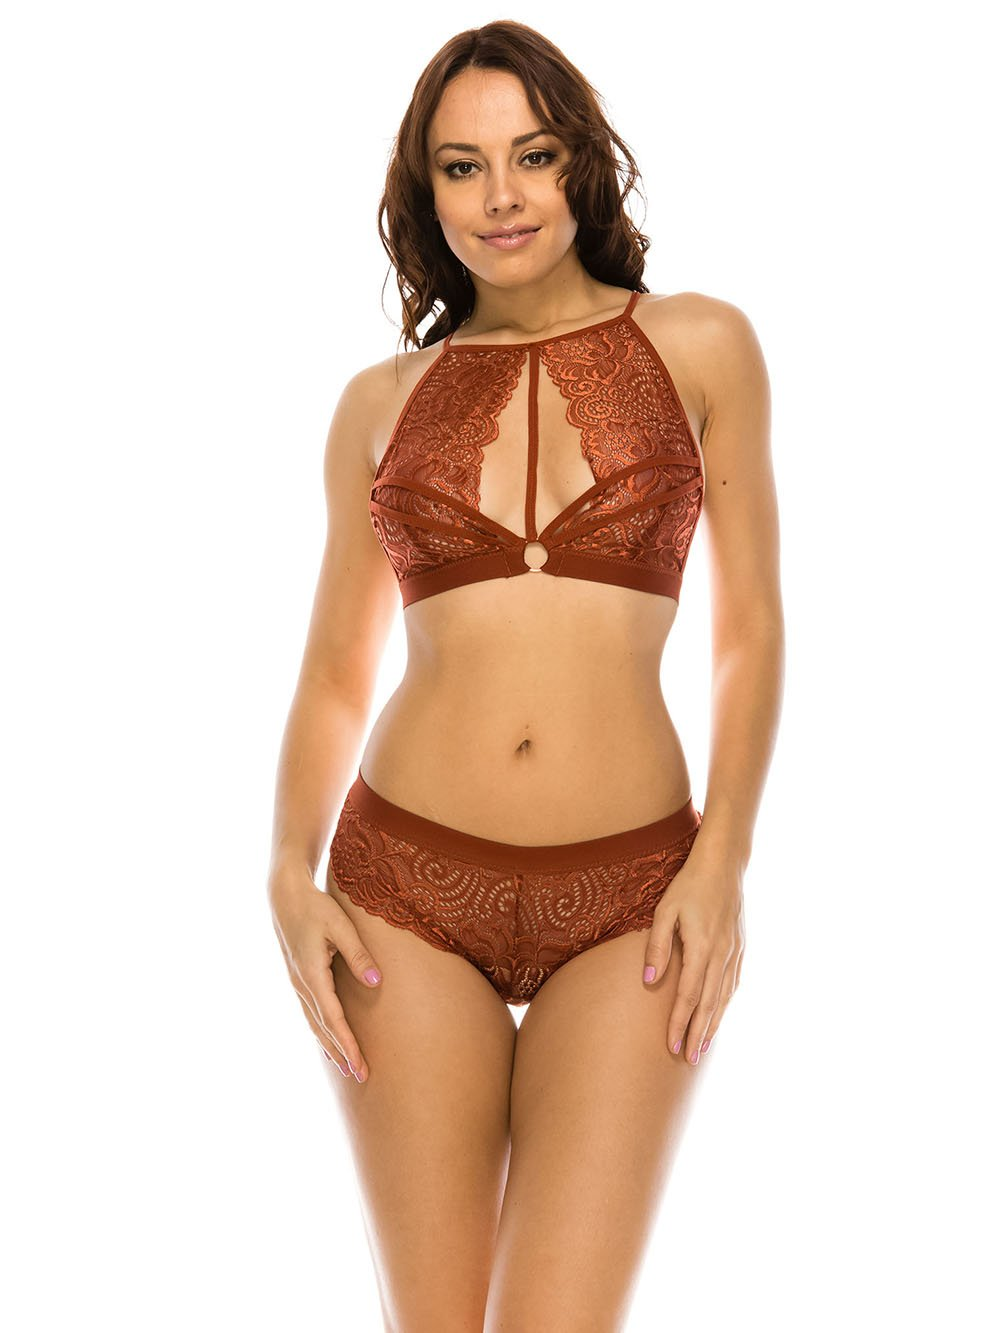 Lace High Neck Bralette - Youmita Lingerie